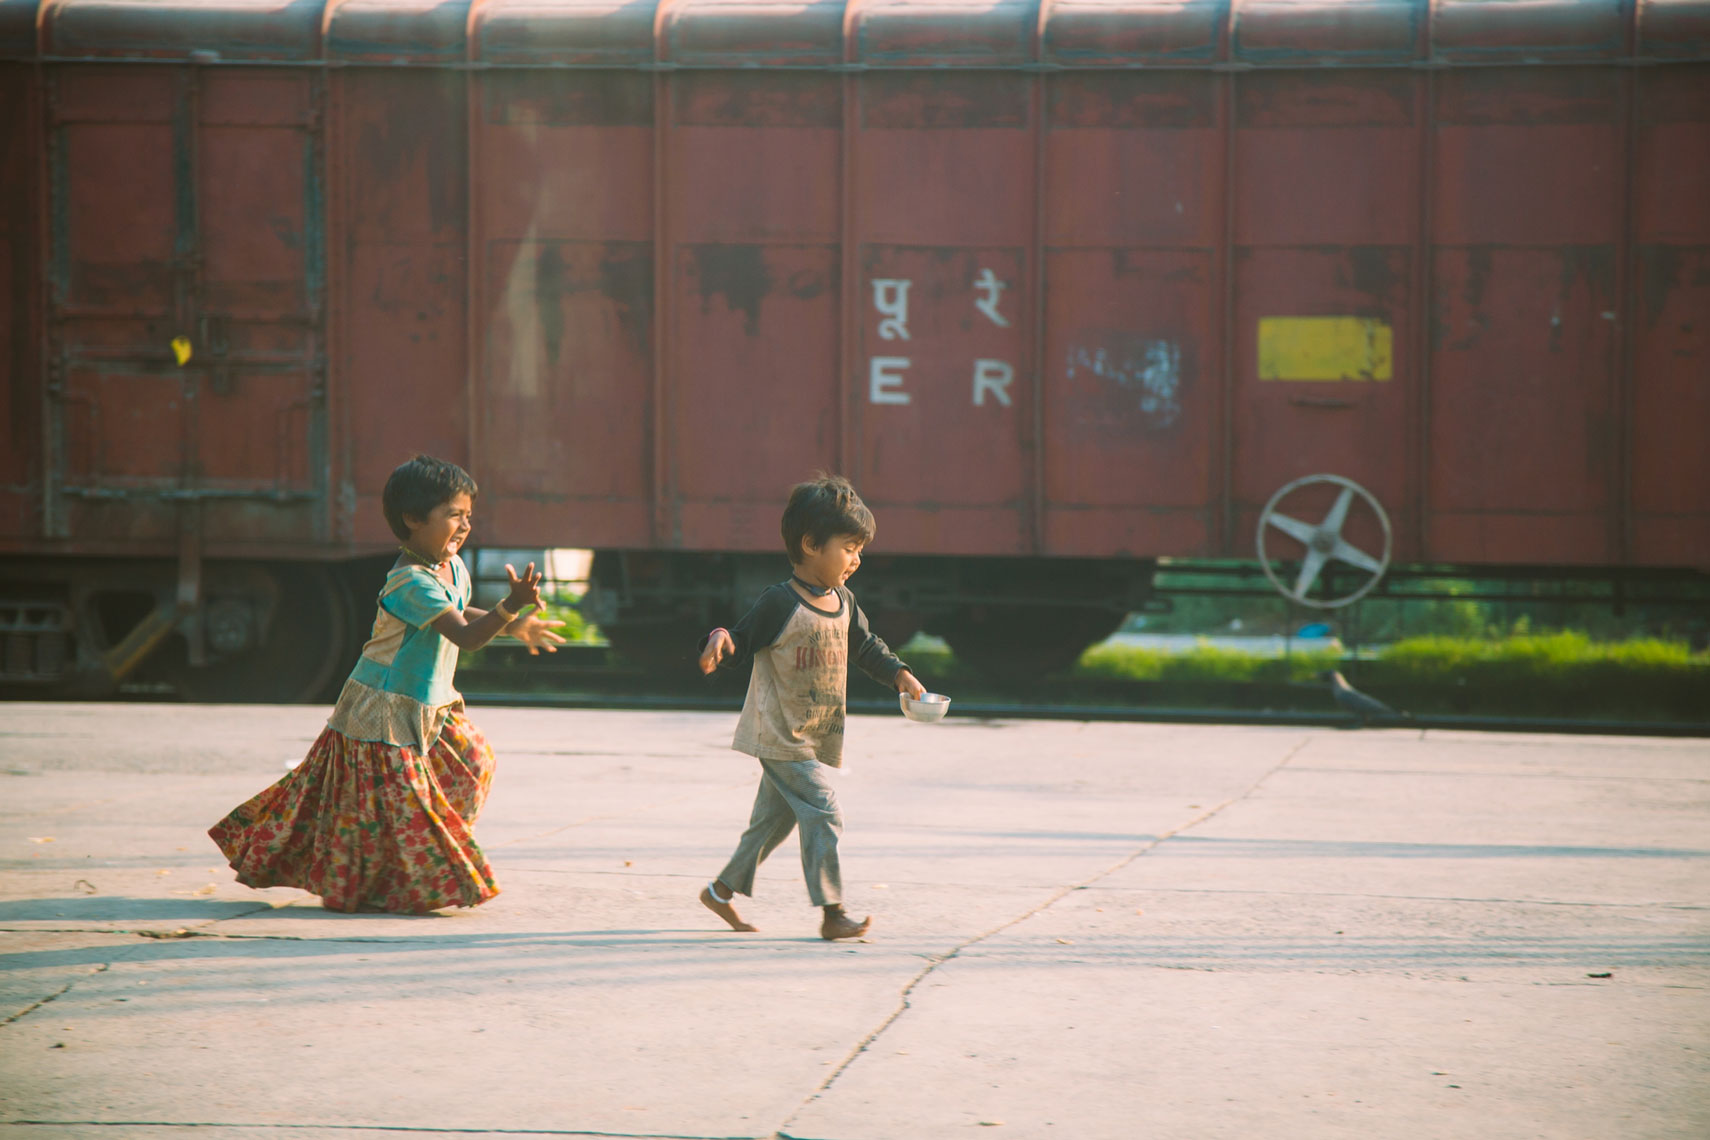 deepi-ahluwalia-india-kids-train